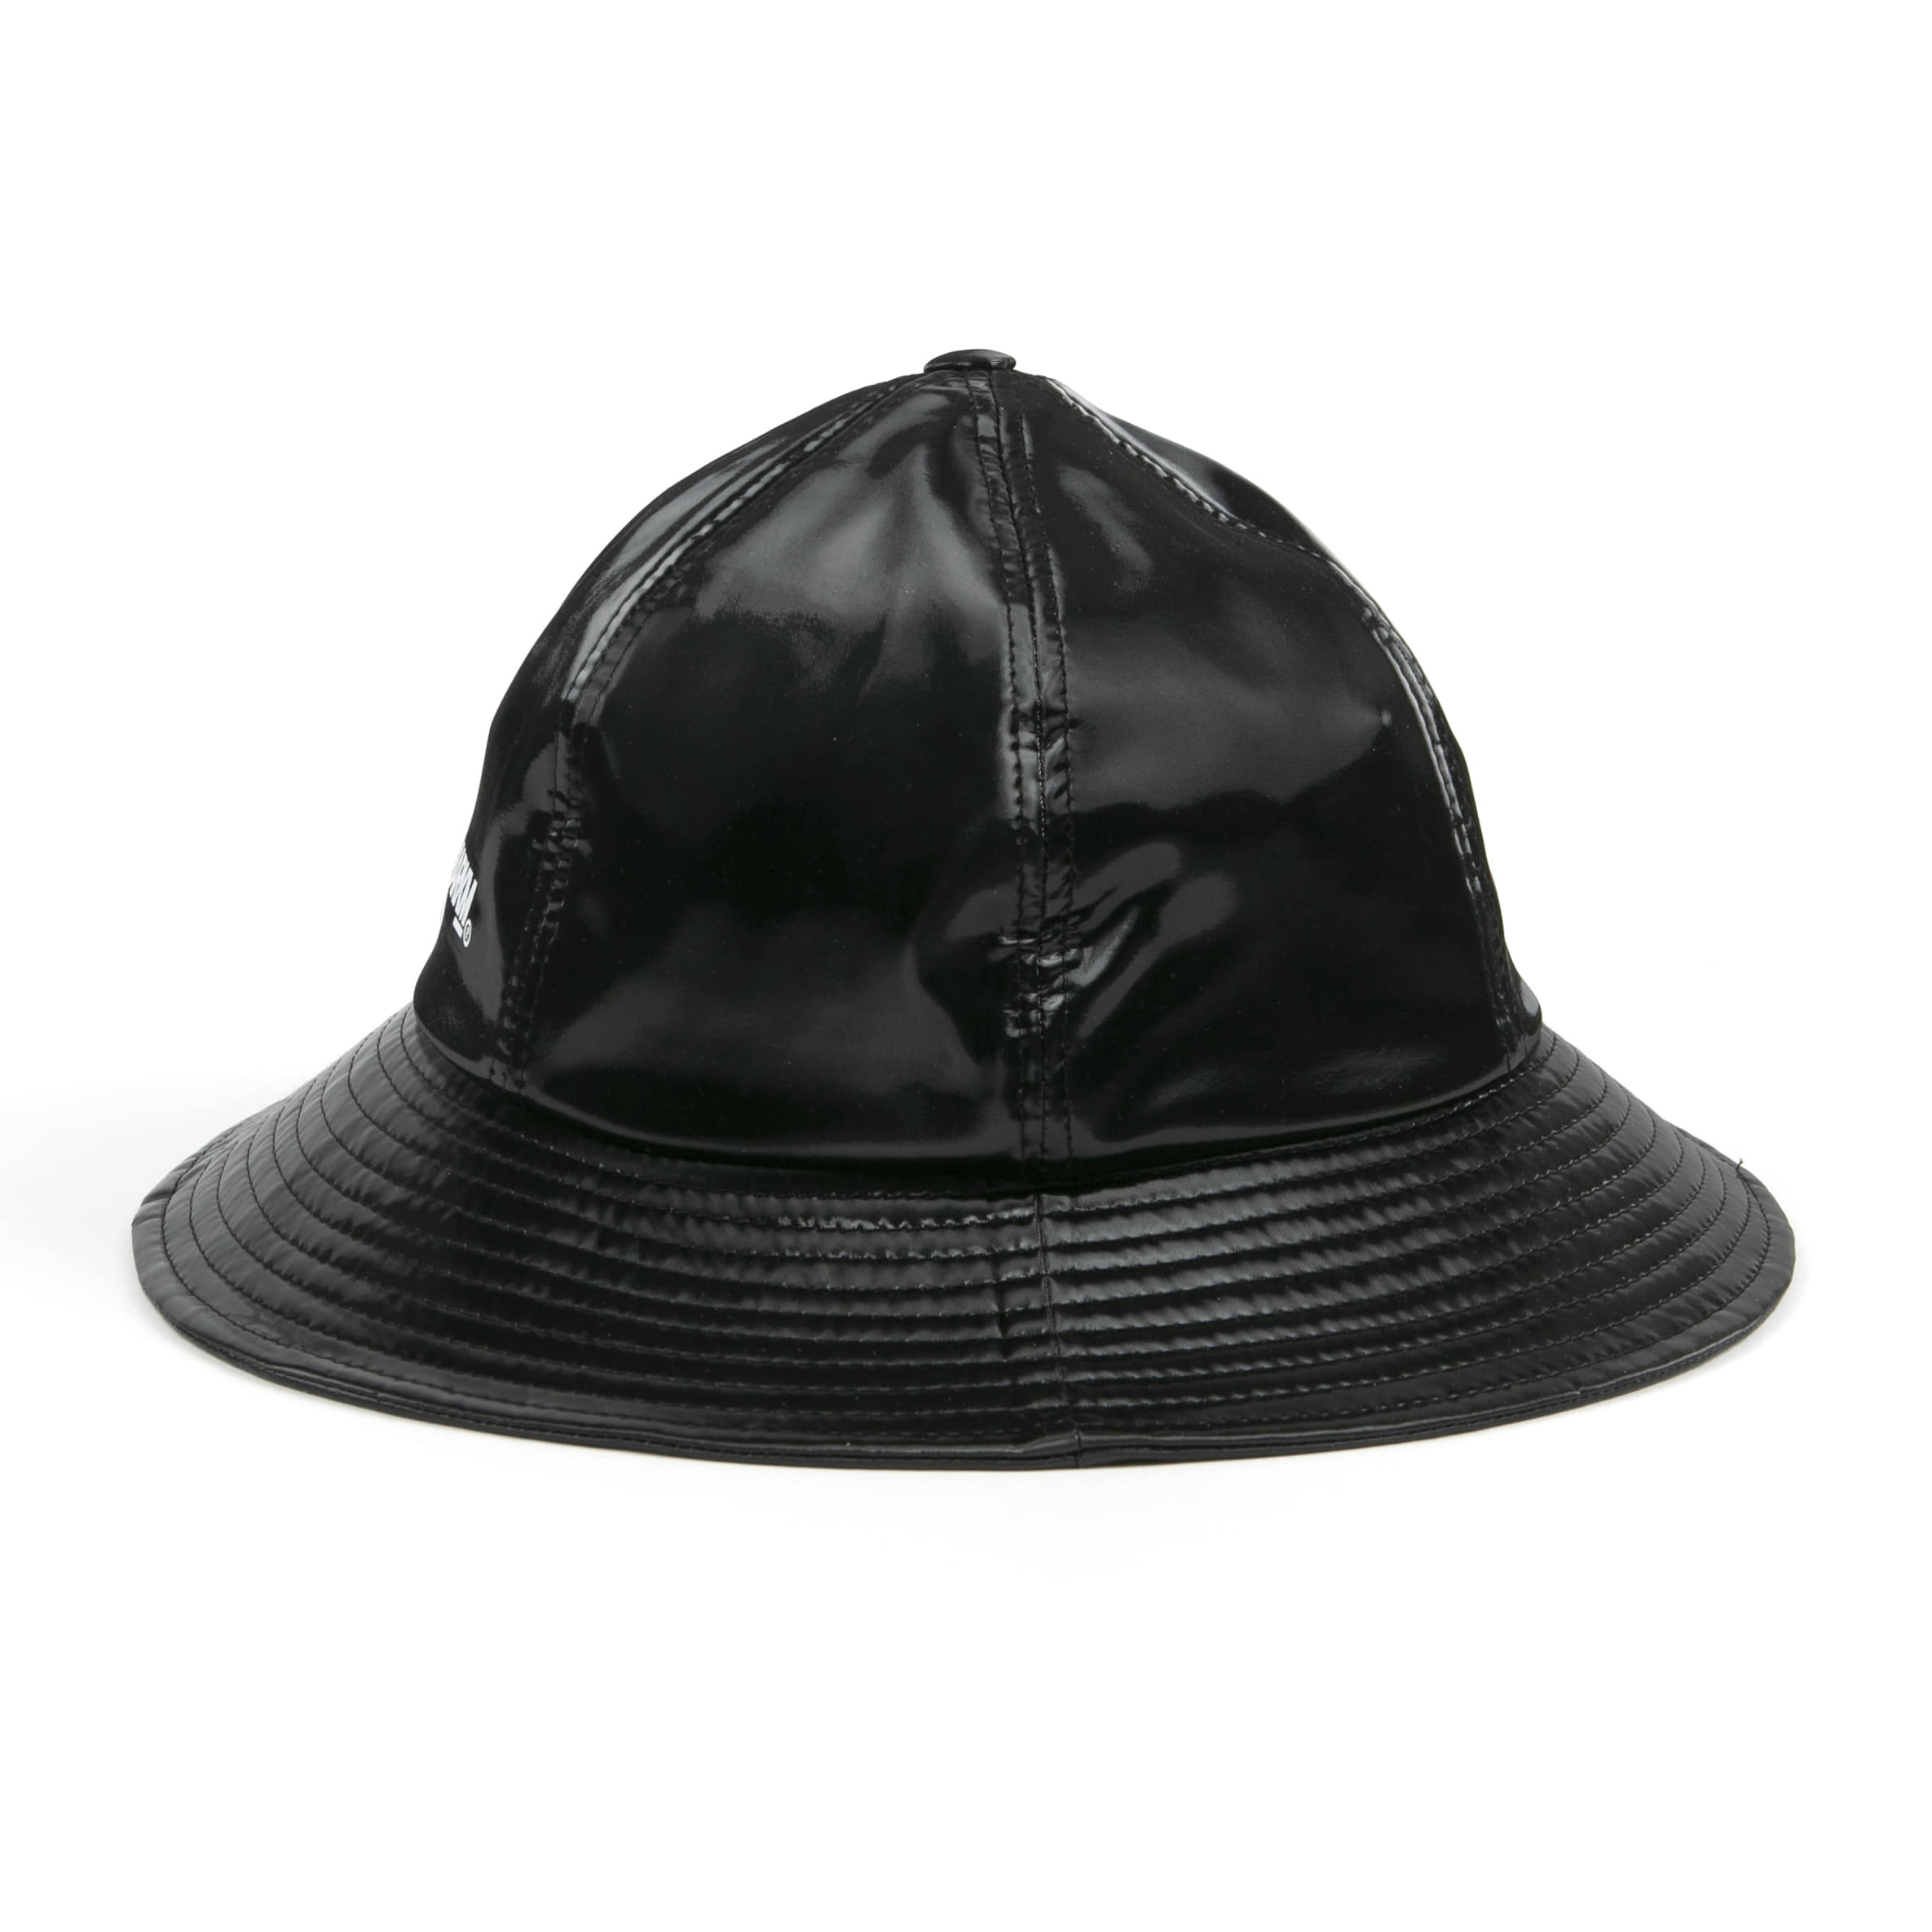 19SS Leather burket hat MXANC9813